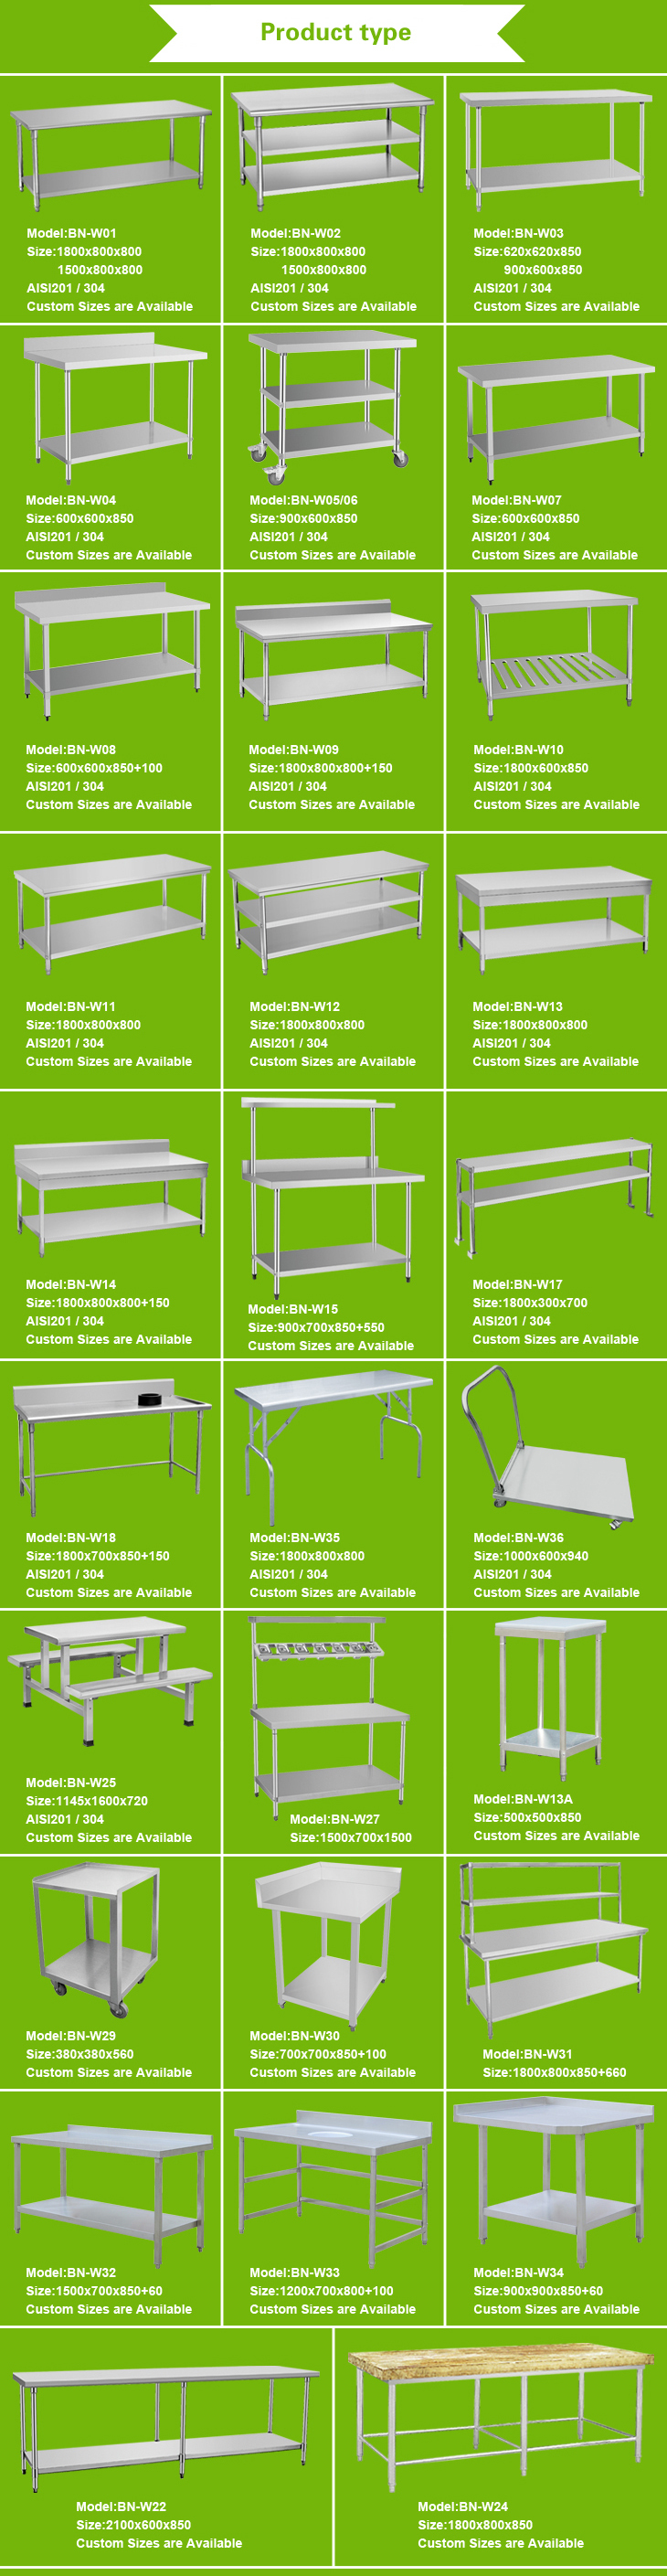 Restaurant Kitchen Work Stations stainless steel prep station table commercial kitchen restaurant